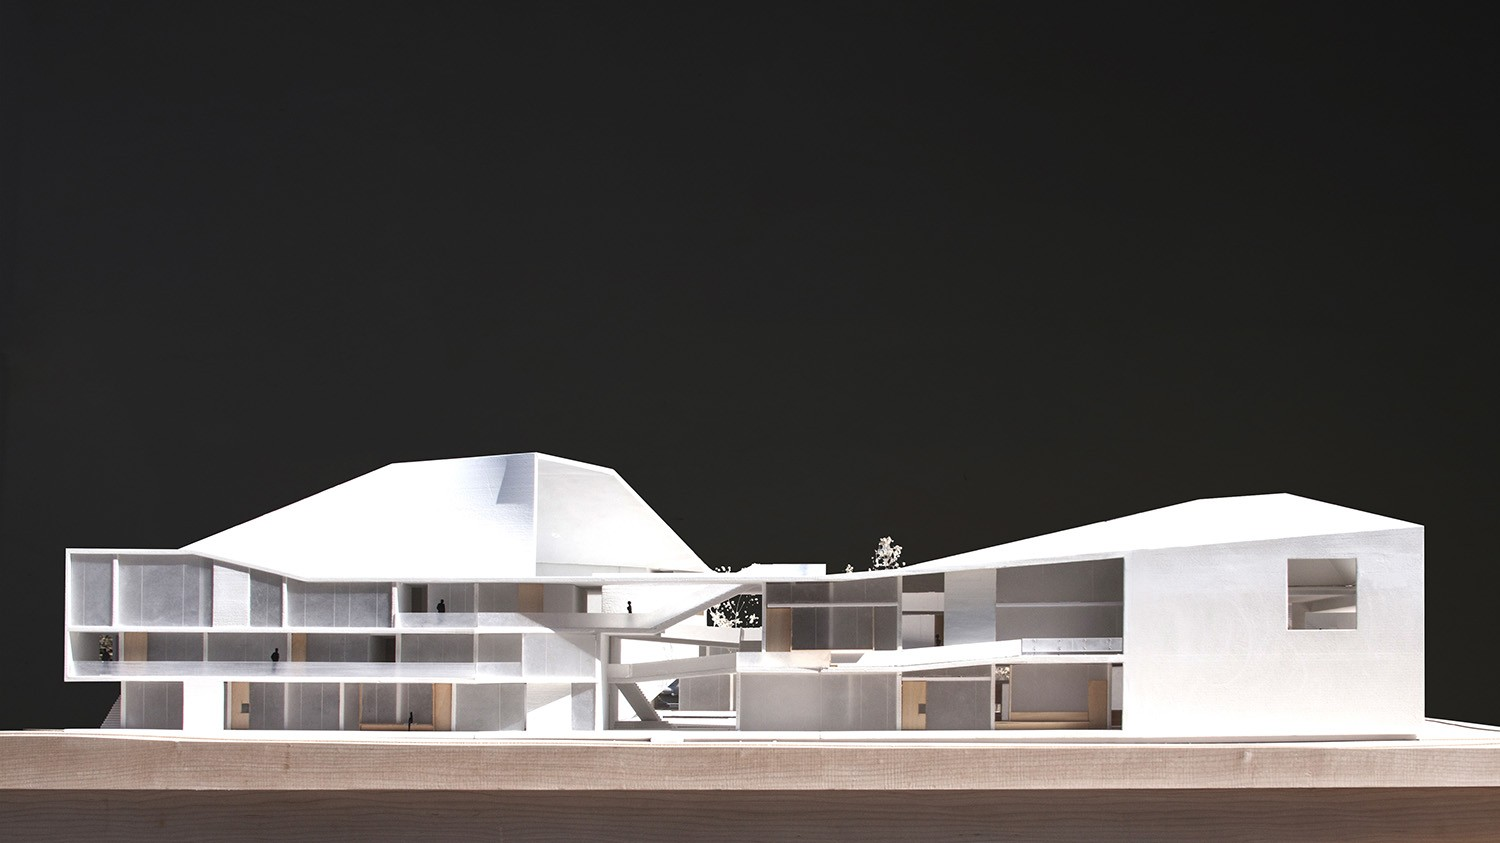 https://stevenholl.sfo2.digitaloceanspaces.com/uploads/projects/project-images/StevenHollArchitects_Bogota_IMG_6219-edit_WH.jpg